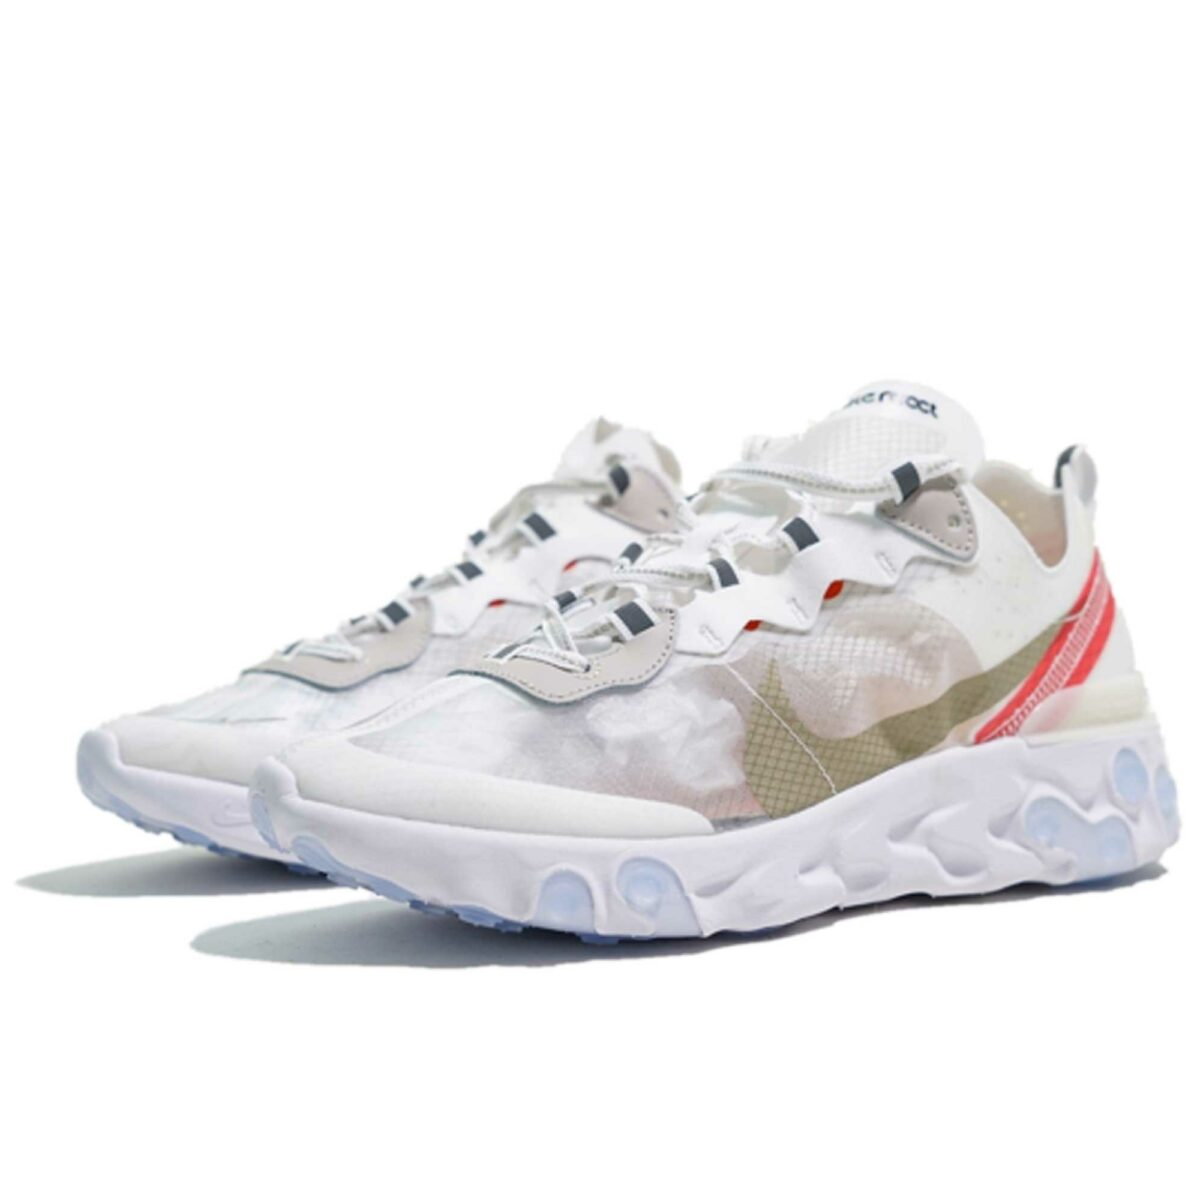 undercover x nike react element 87 white купить